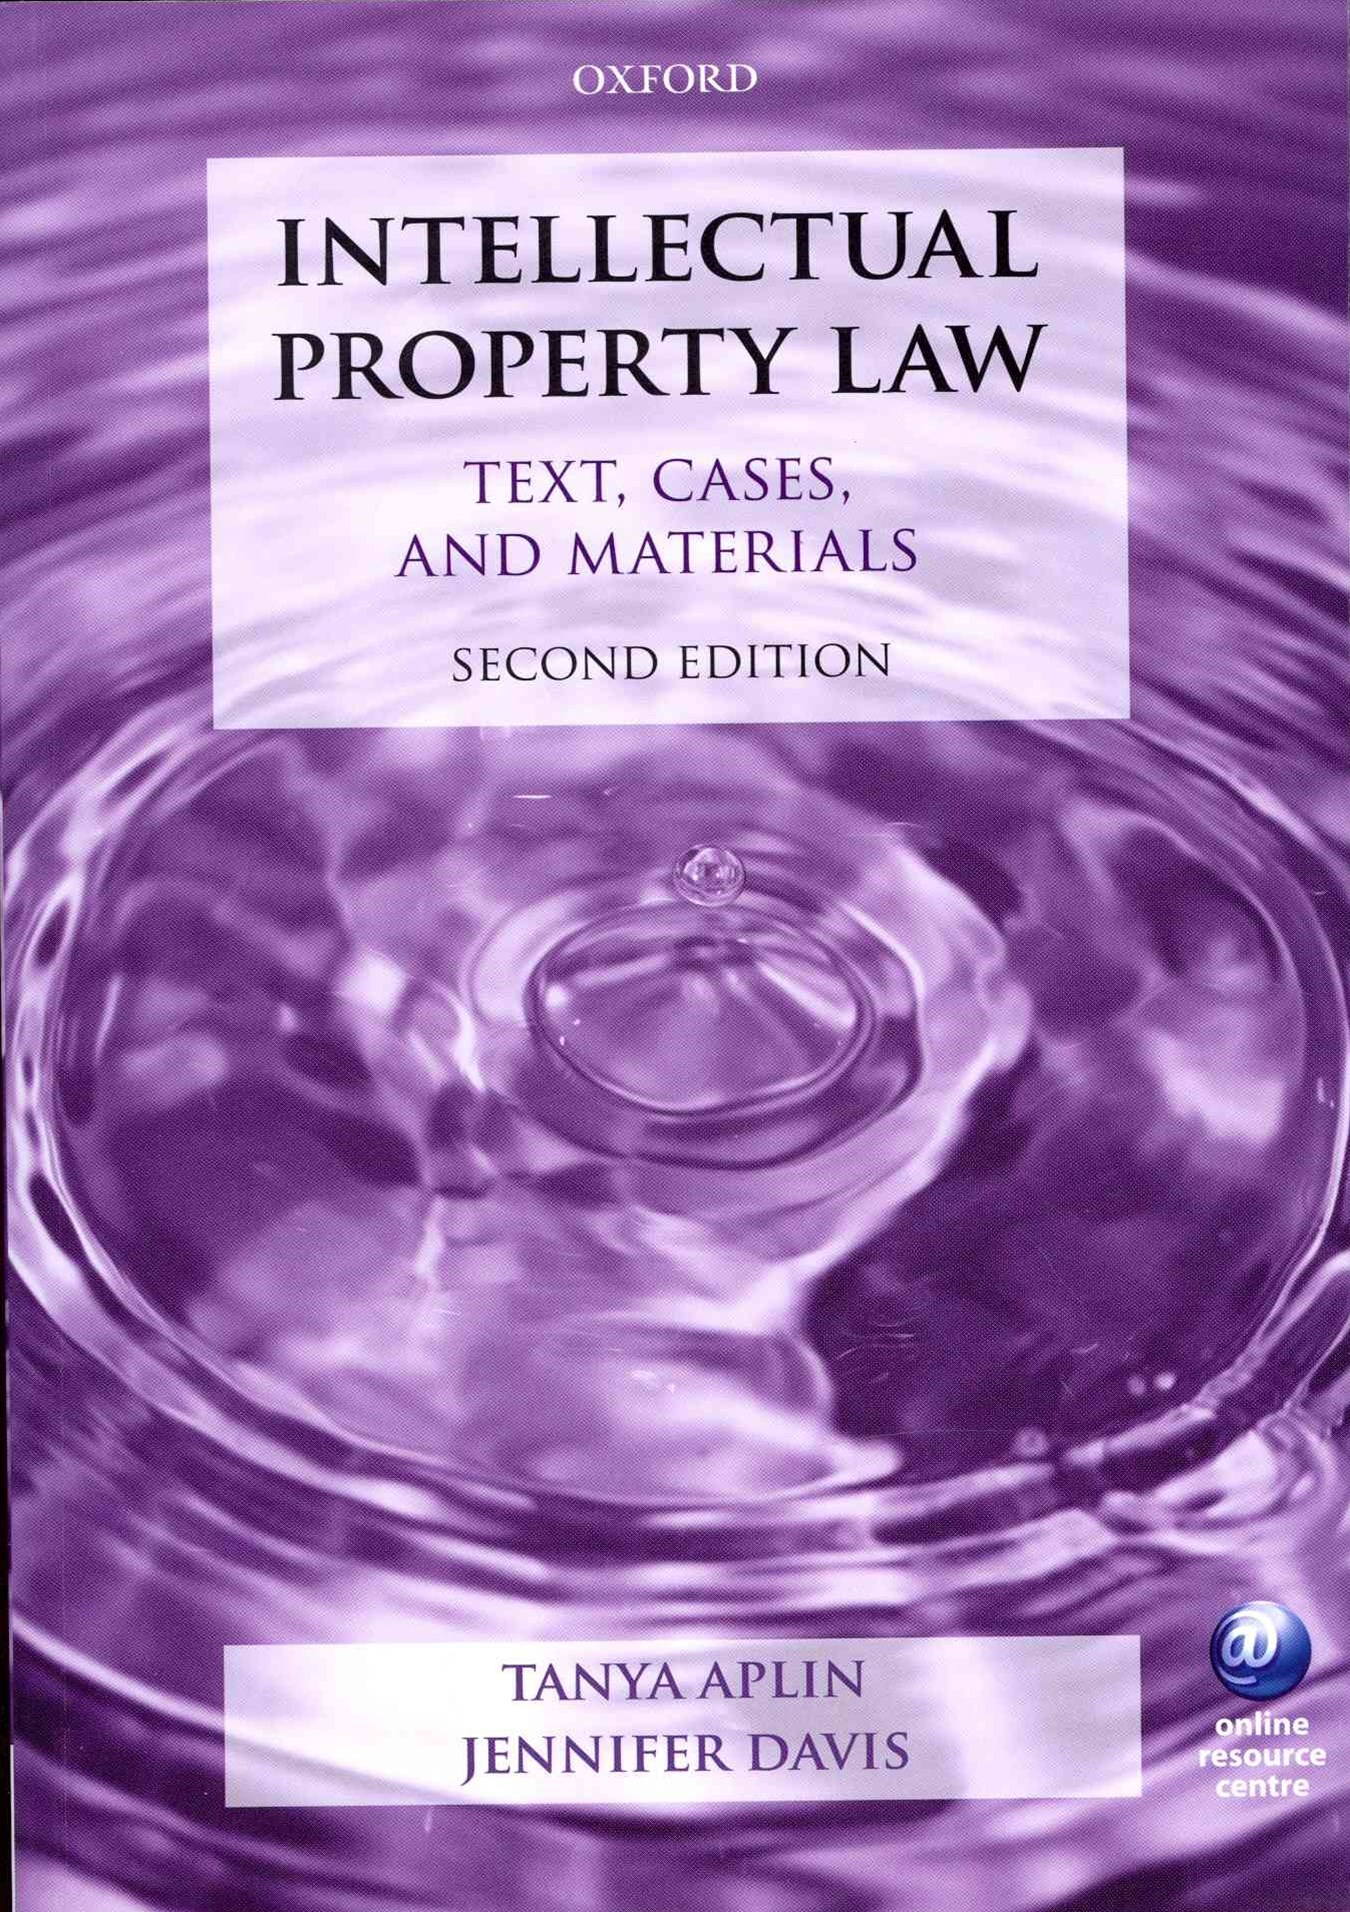 Intellectual Property Law: Text, Cases, and Materials